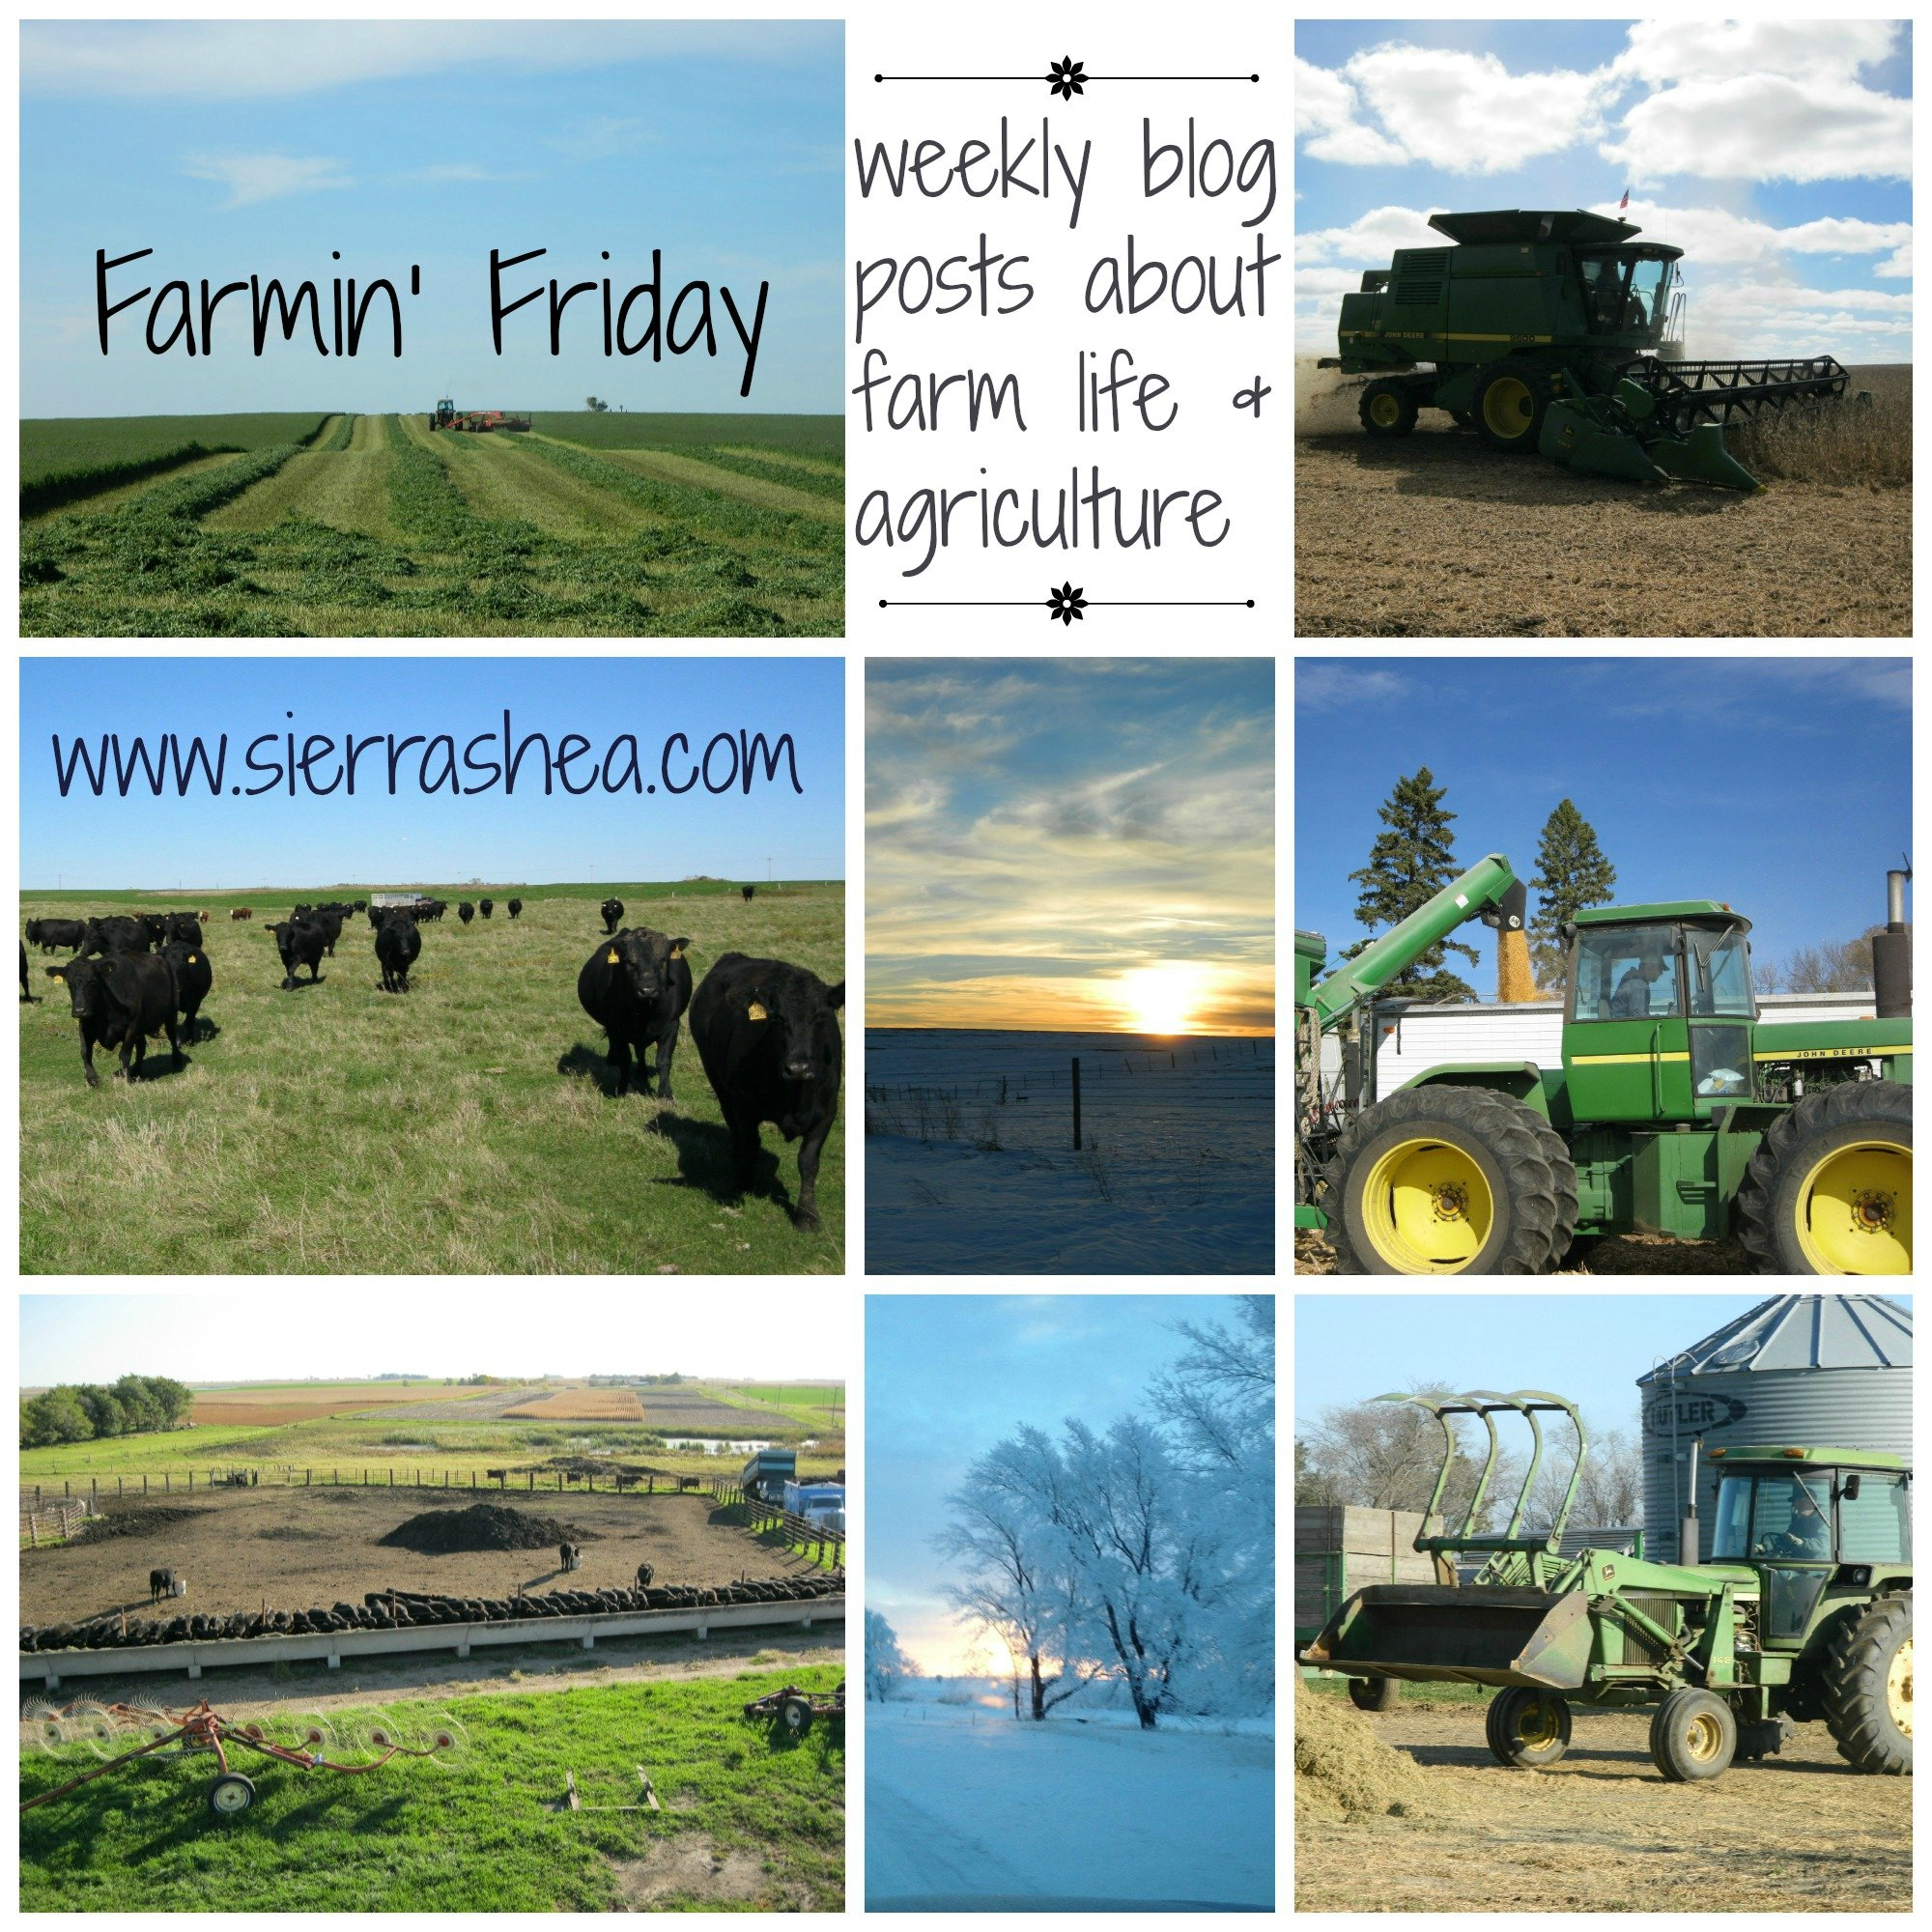 FarmingFriday